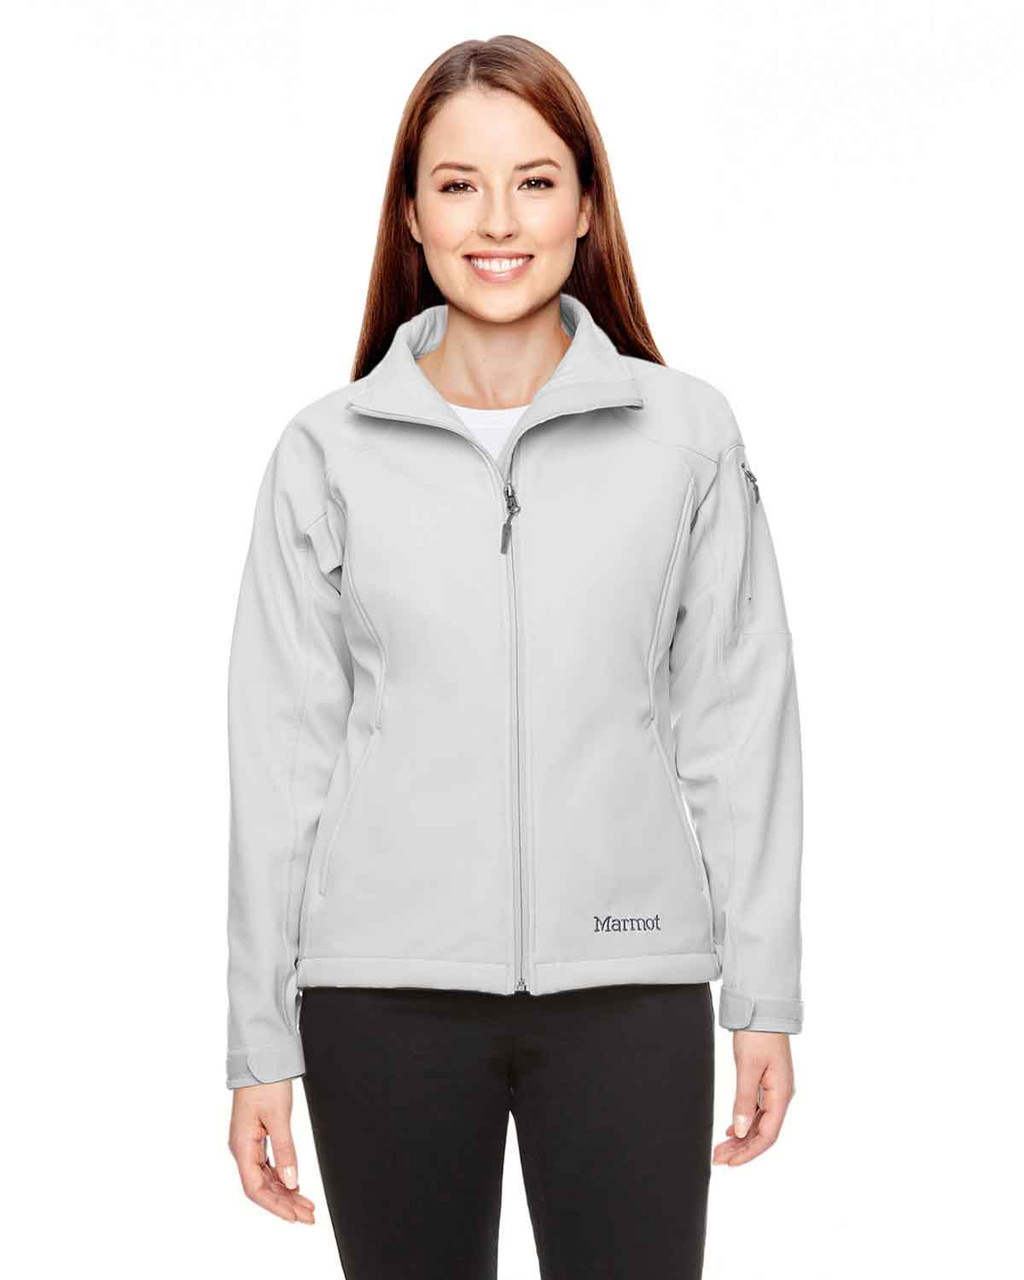 Glacier Grey - 85000 Marmot Ladies' Gravity Jacket | BlankClothing.ca